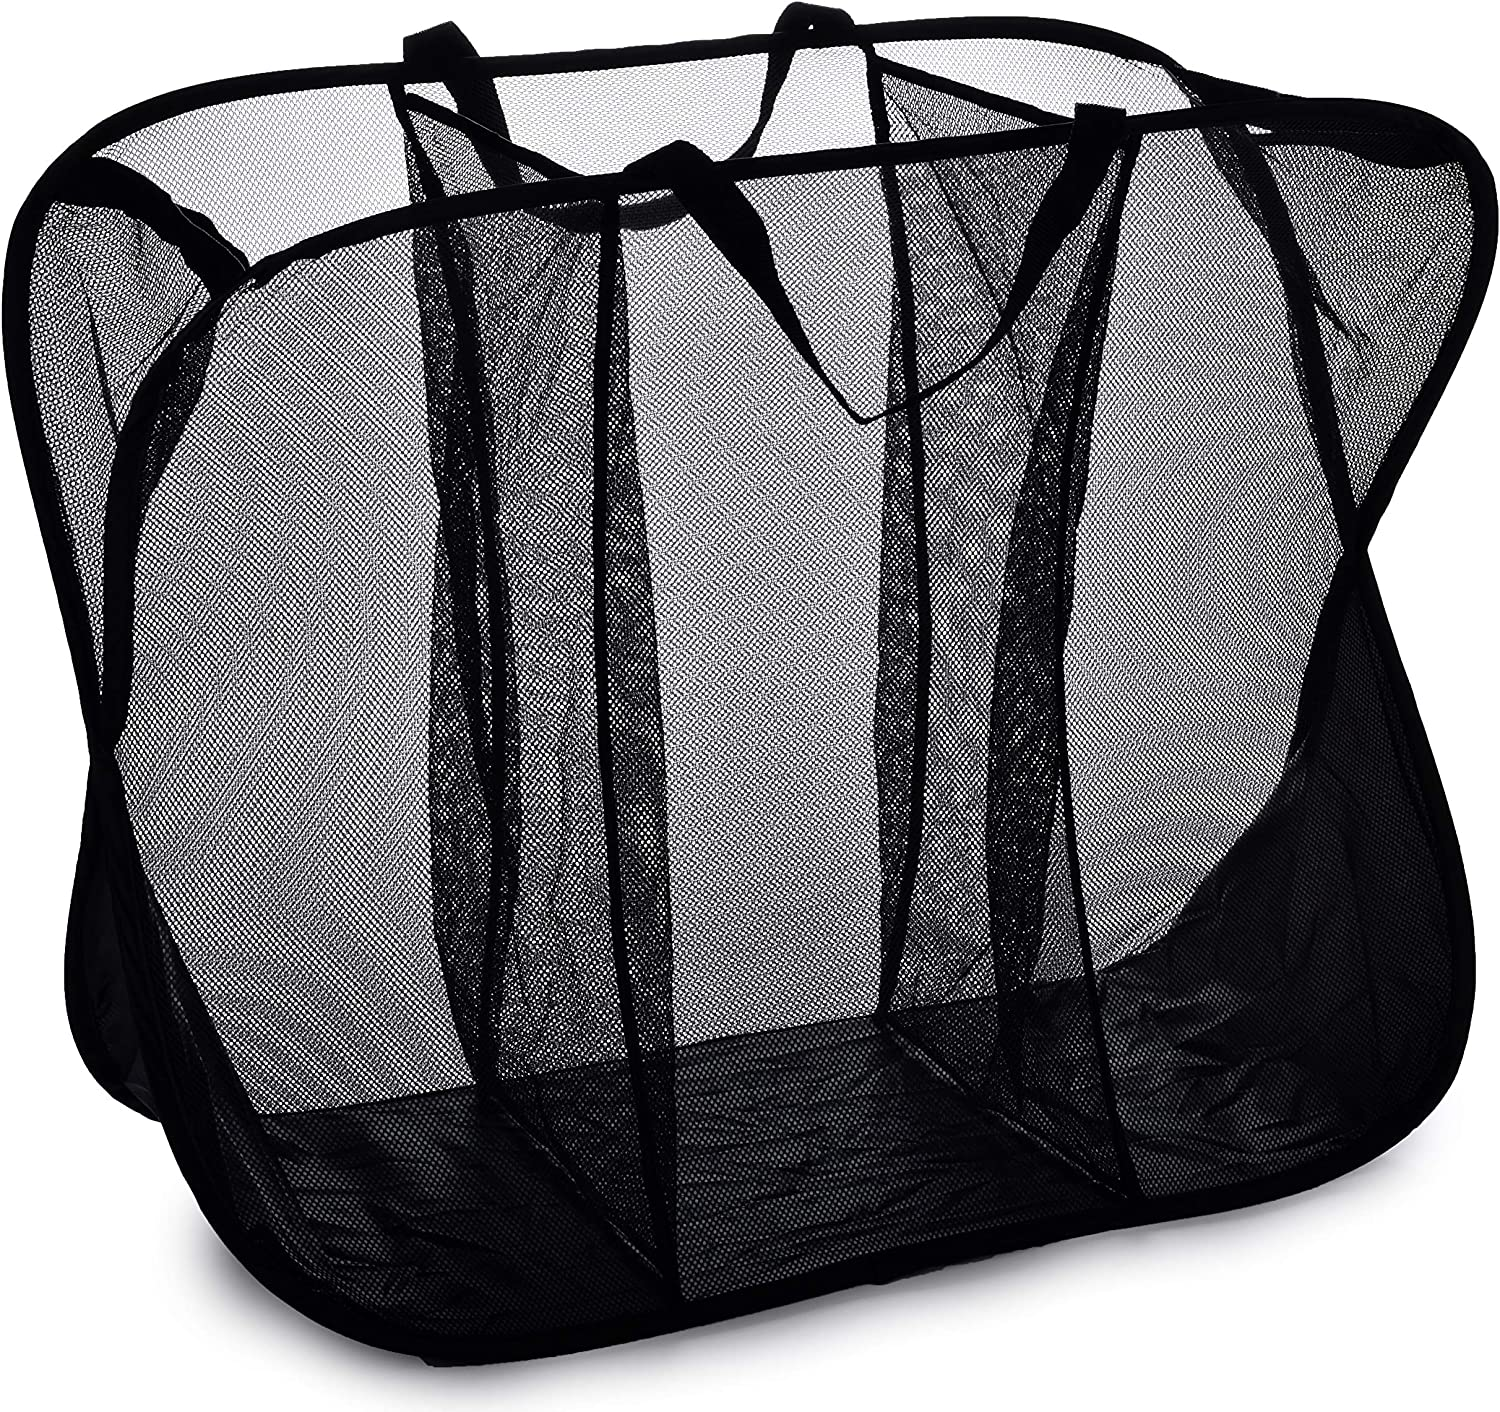 Three Compartment Popup Hamper - Durable Mesh Material, Folds for Storage, Handles to Carry Easily to The Laundry Room. Folding Pop-Up Laundry Hampers are Great for College Dorm or Travel. (Black)